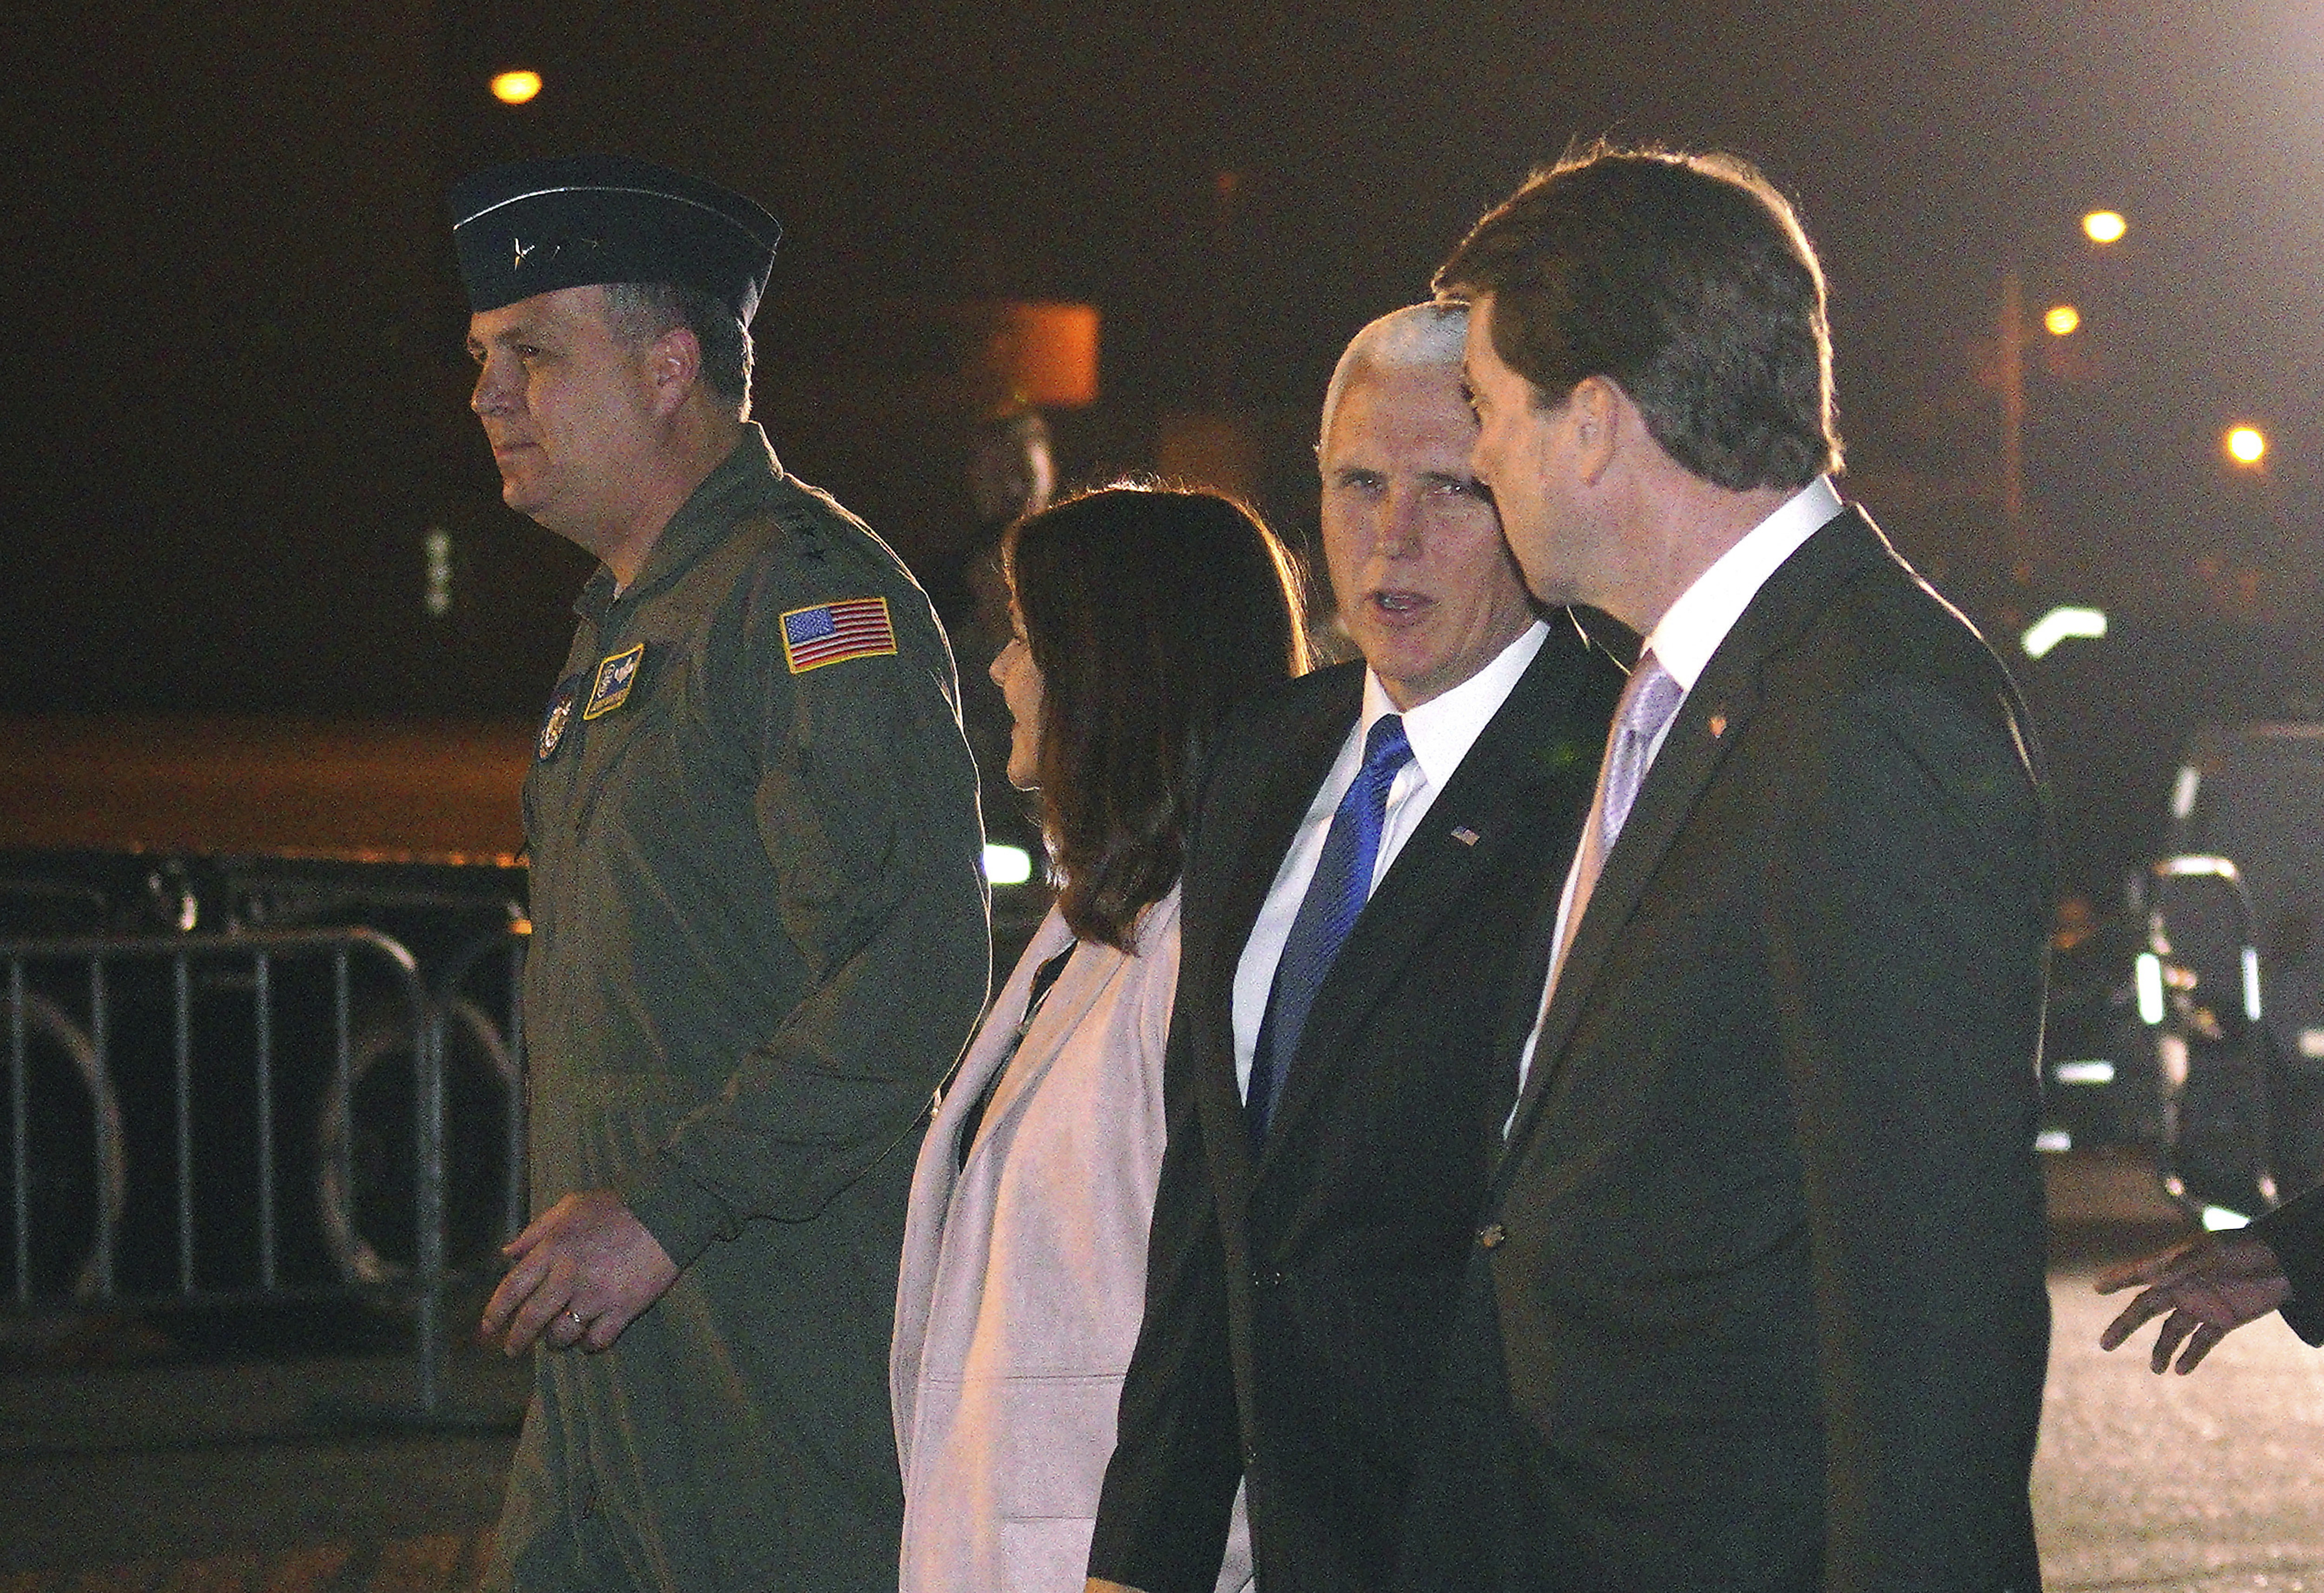 U.S. Vice President Mike Pence, second right, and his wife Karen are escorted to a waiting helicopter by the U.S. Ambassador to Japan William Hagerty, right in Fussa, Japan, Nov. 12, 2018.